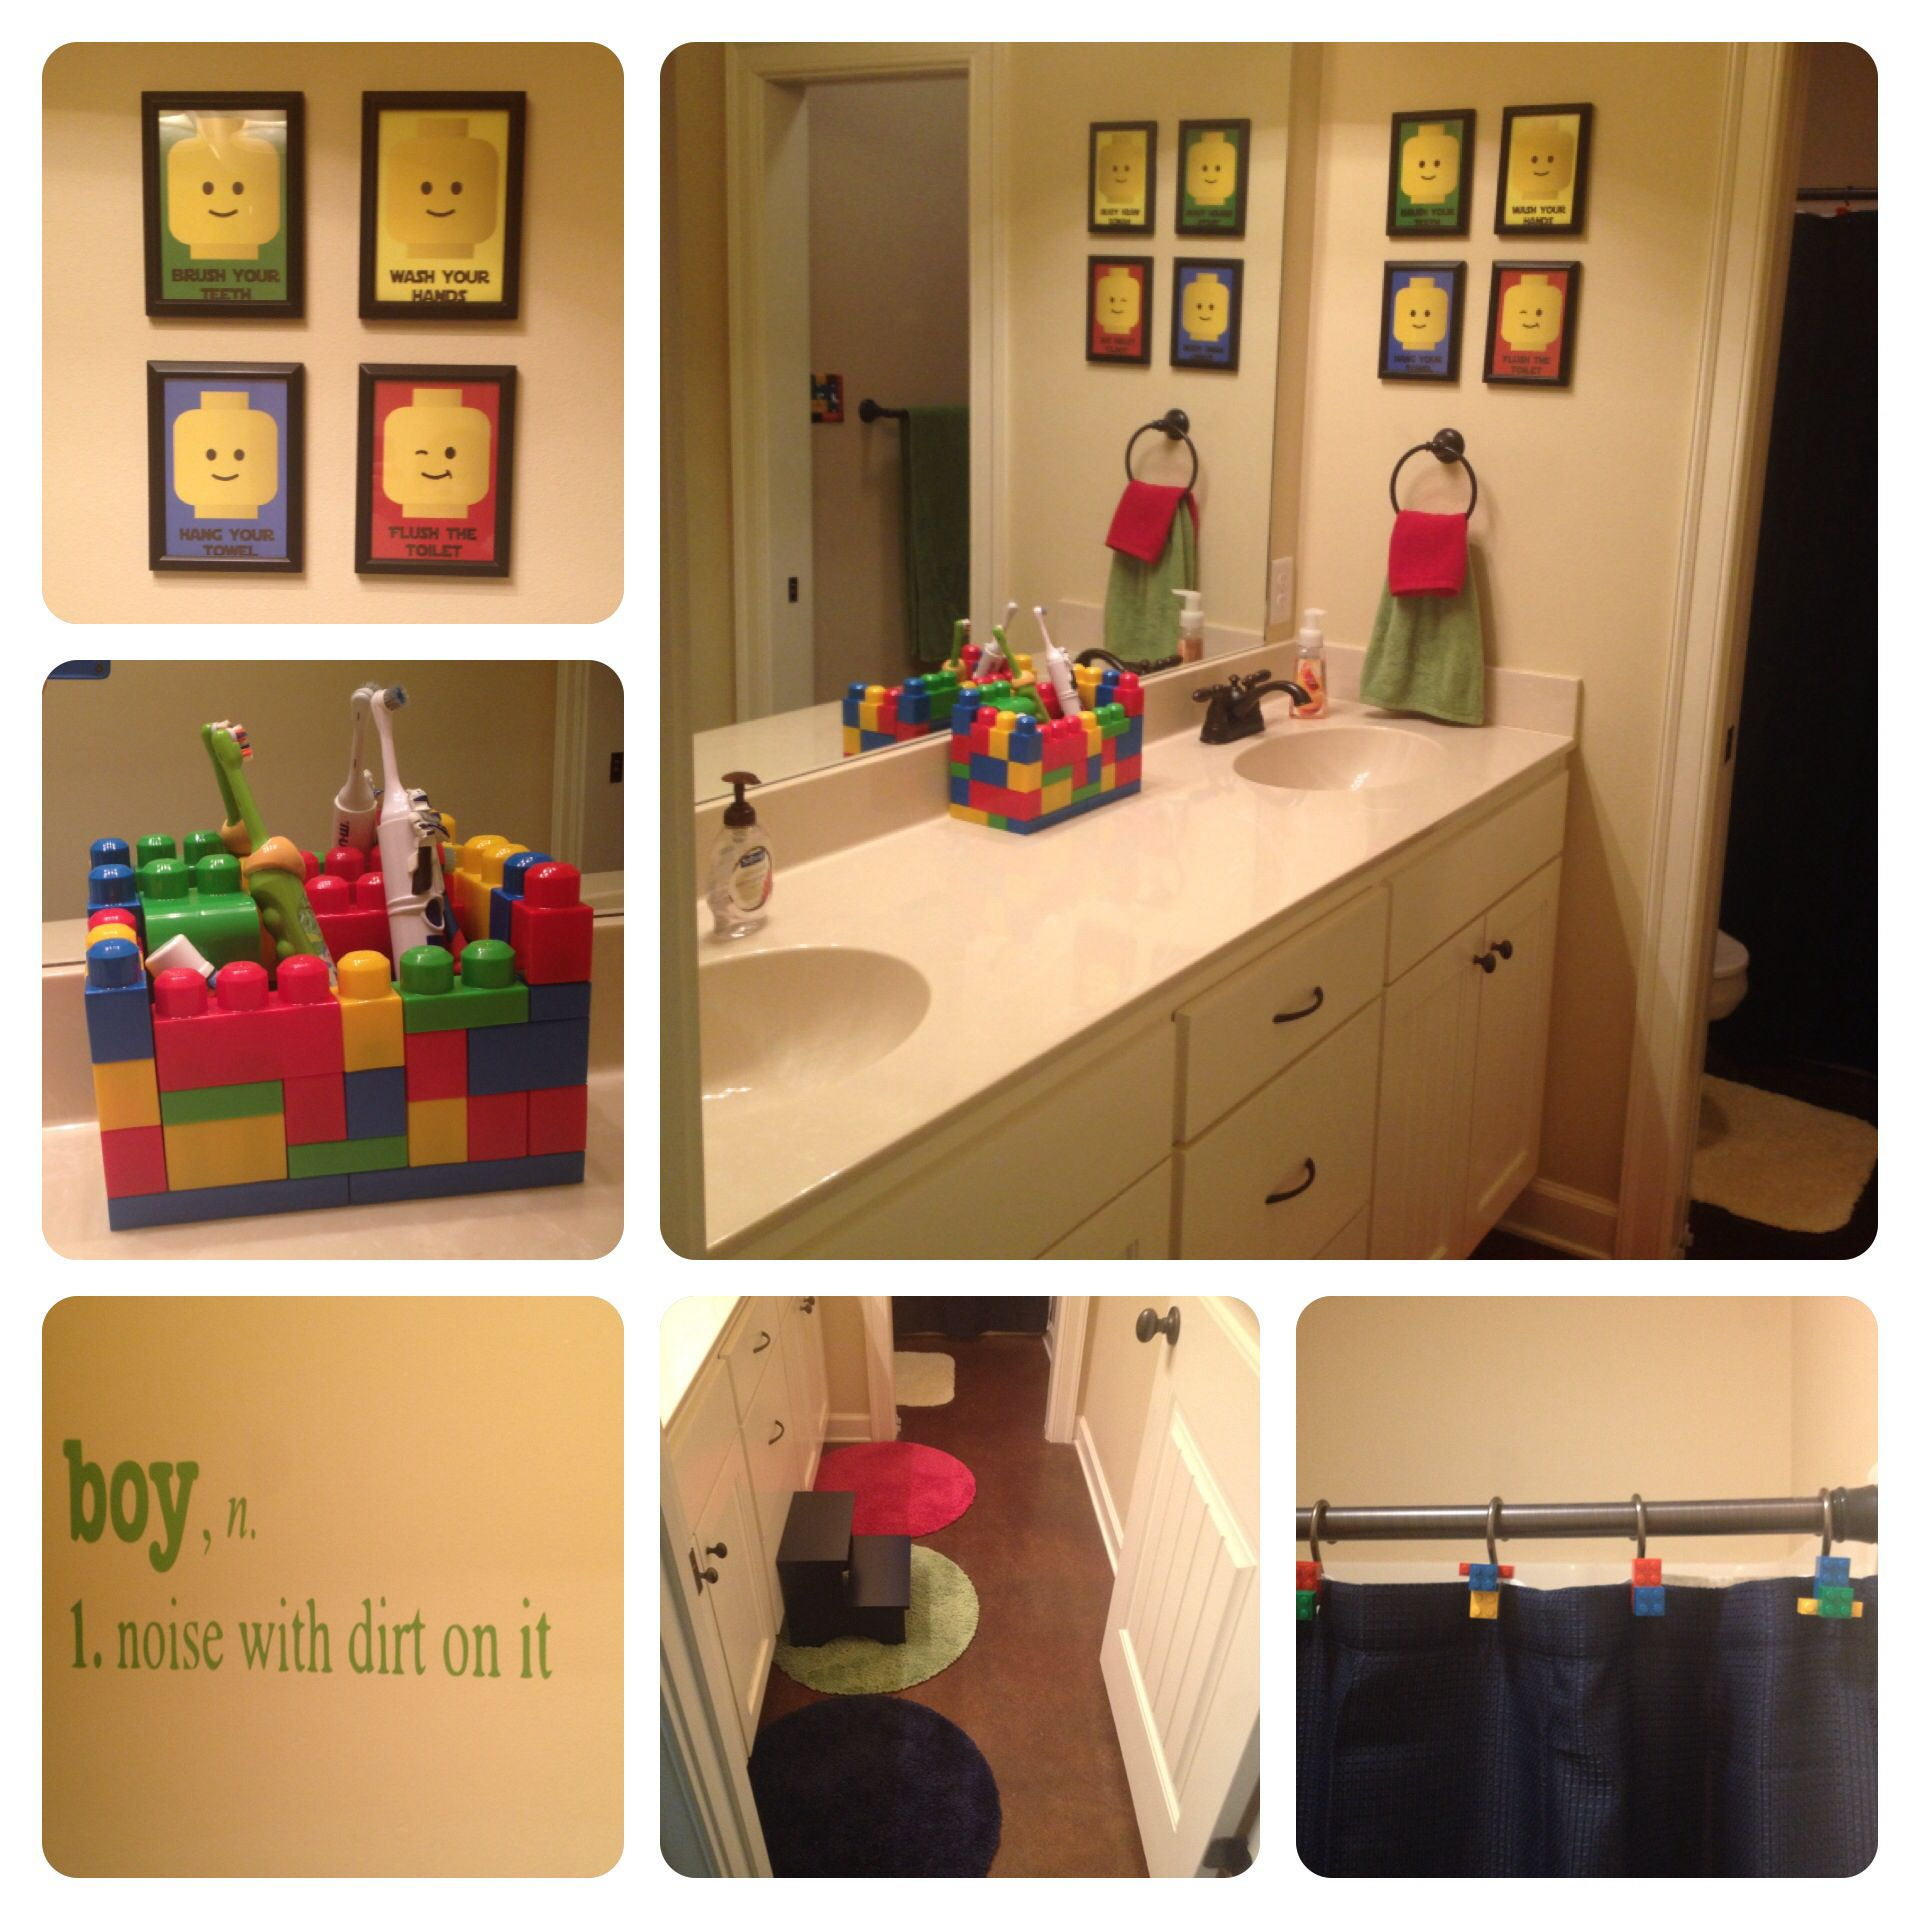 lego bathroom. rugs from target. legos hot glued to shower curtain